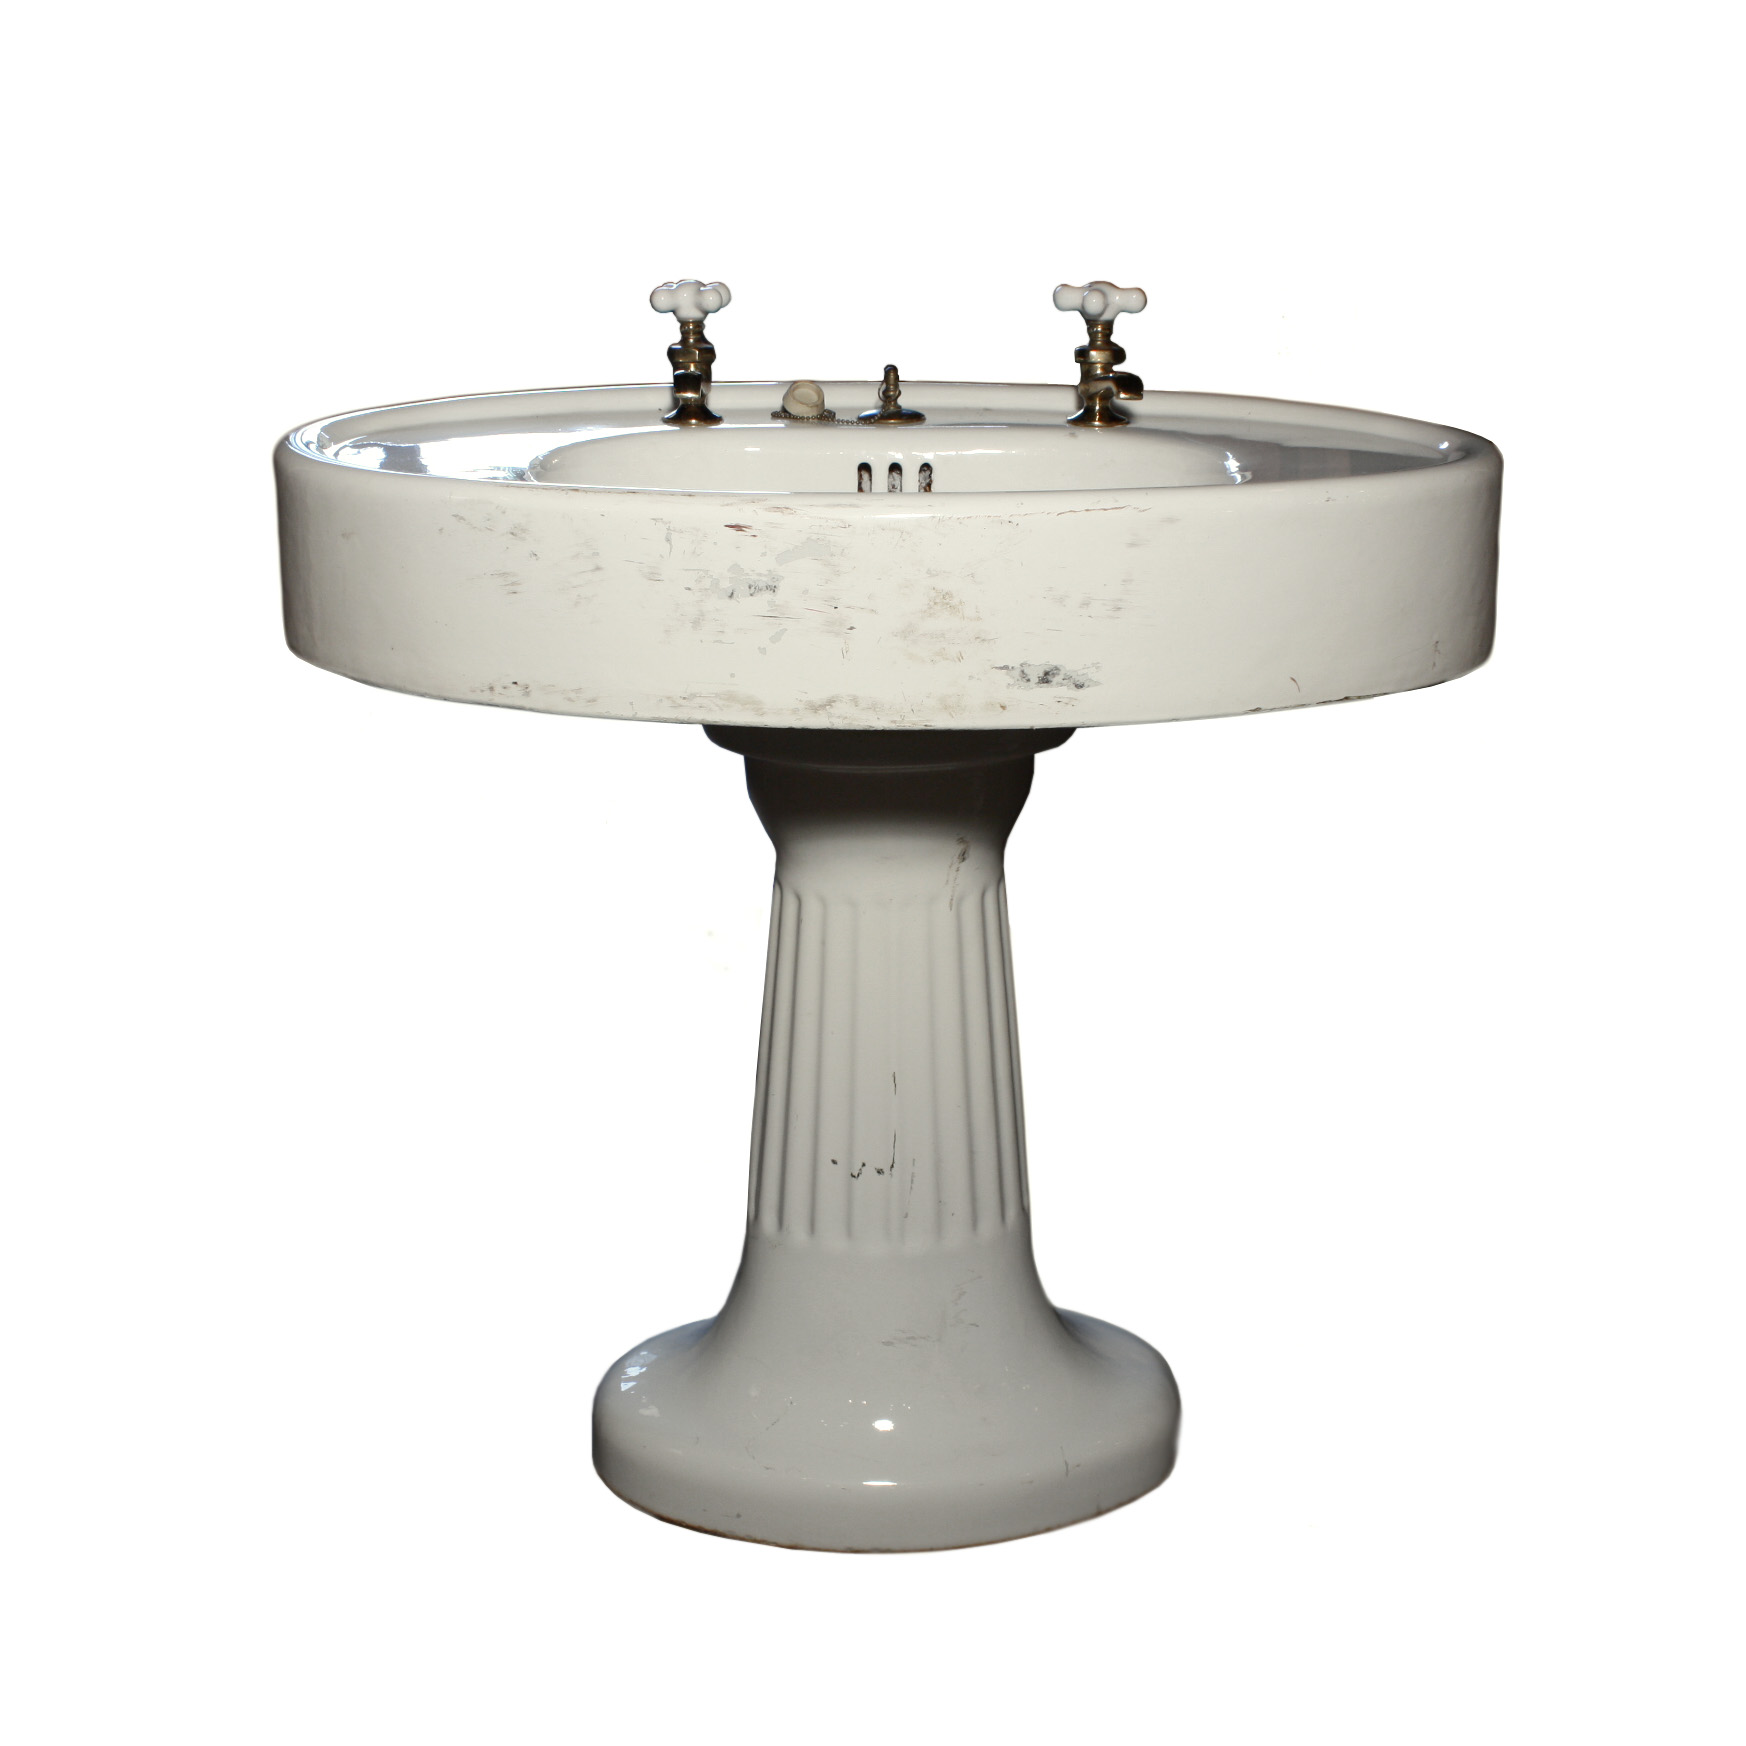 Remarkable Antique Porcelain Pedestal Sink Nsk3 Rw For Sale Classifieds